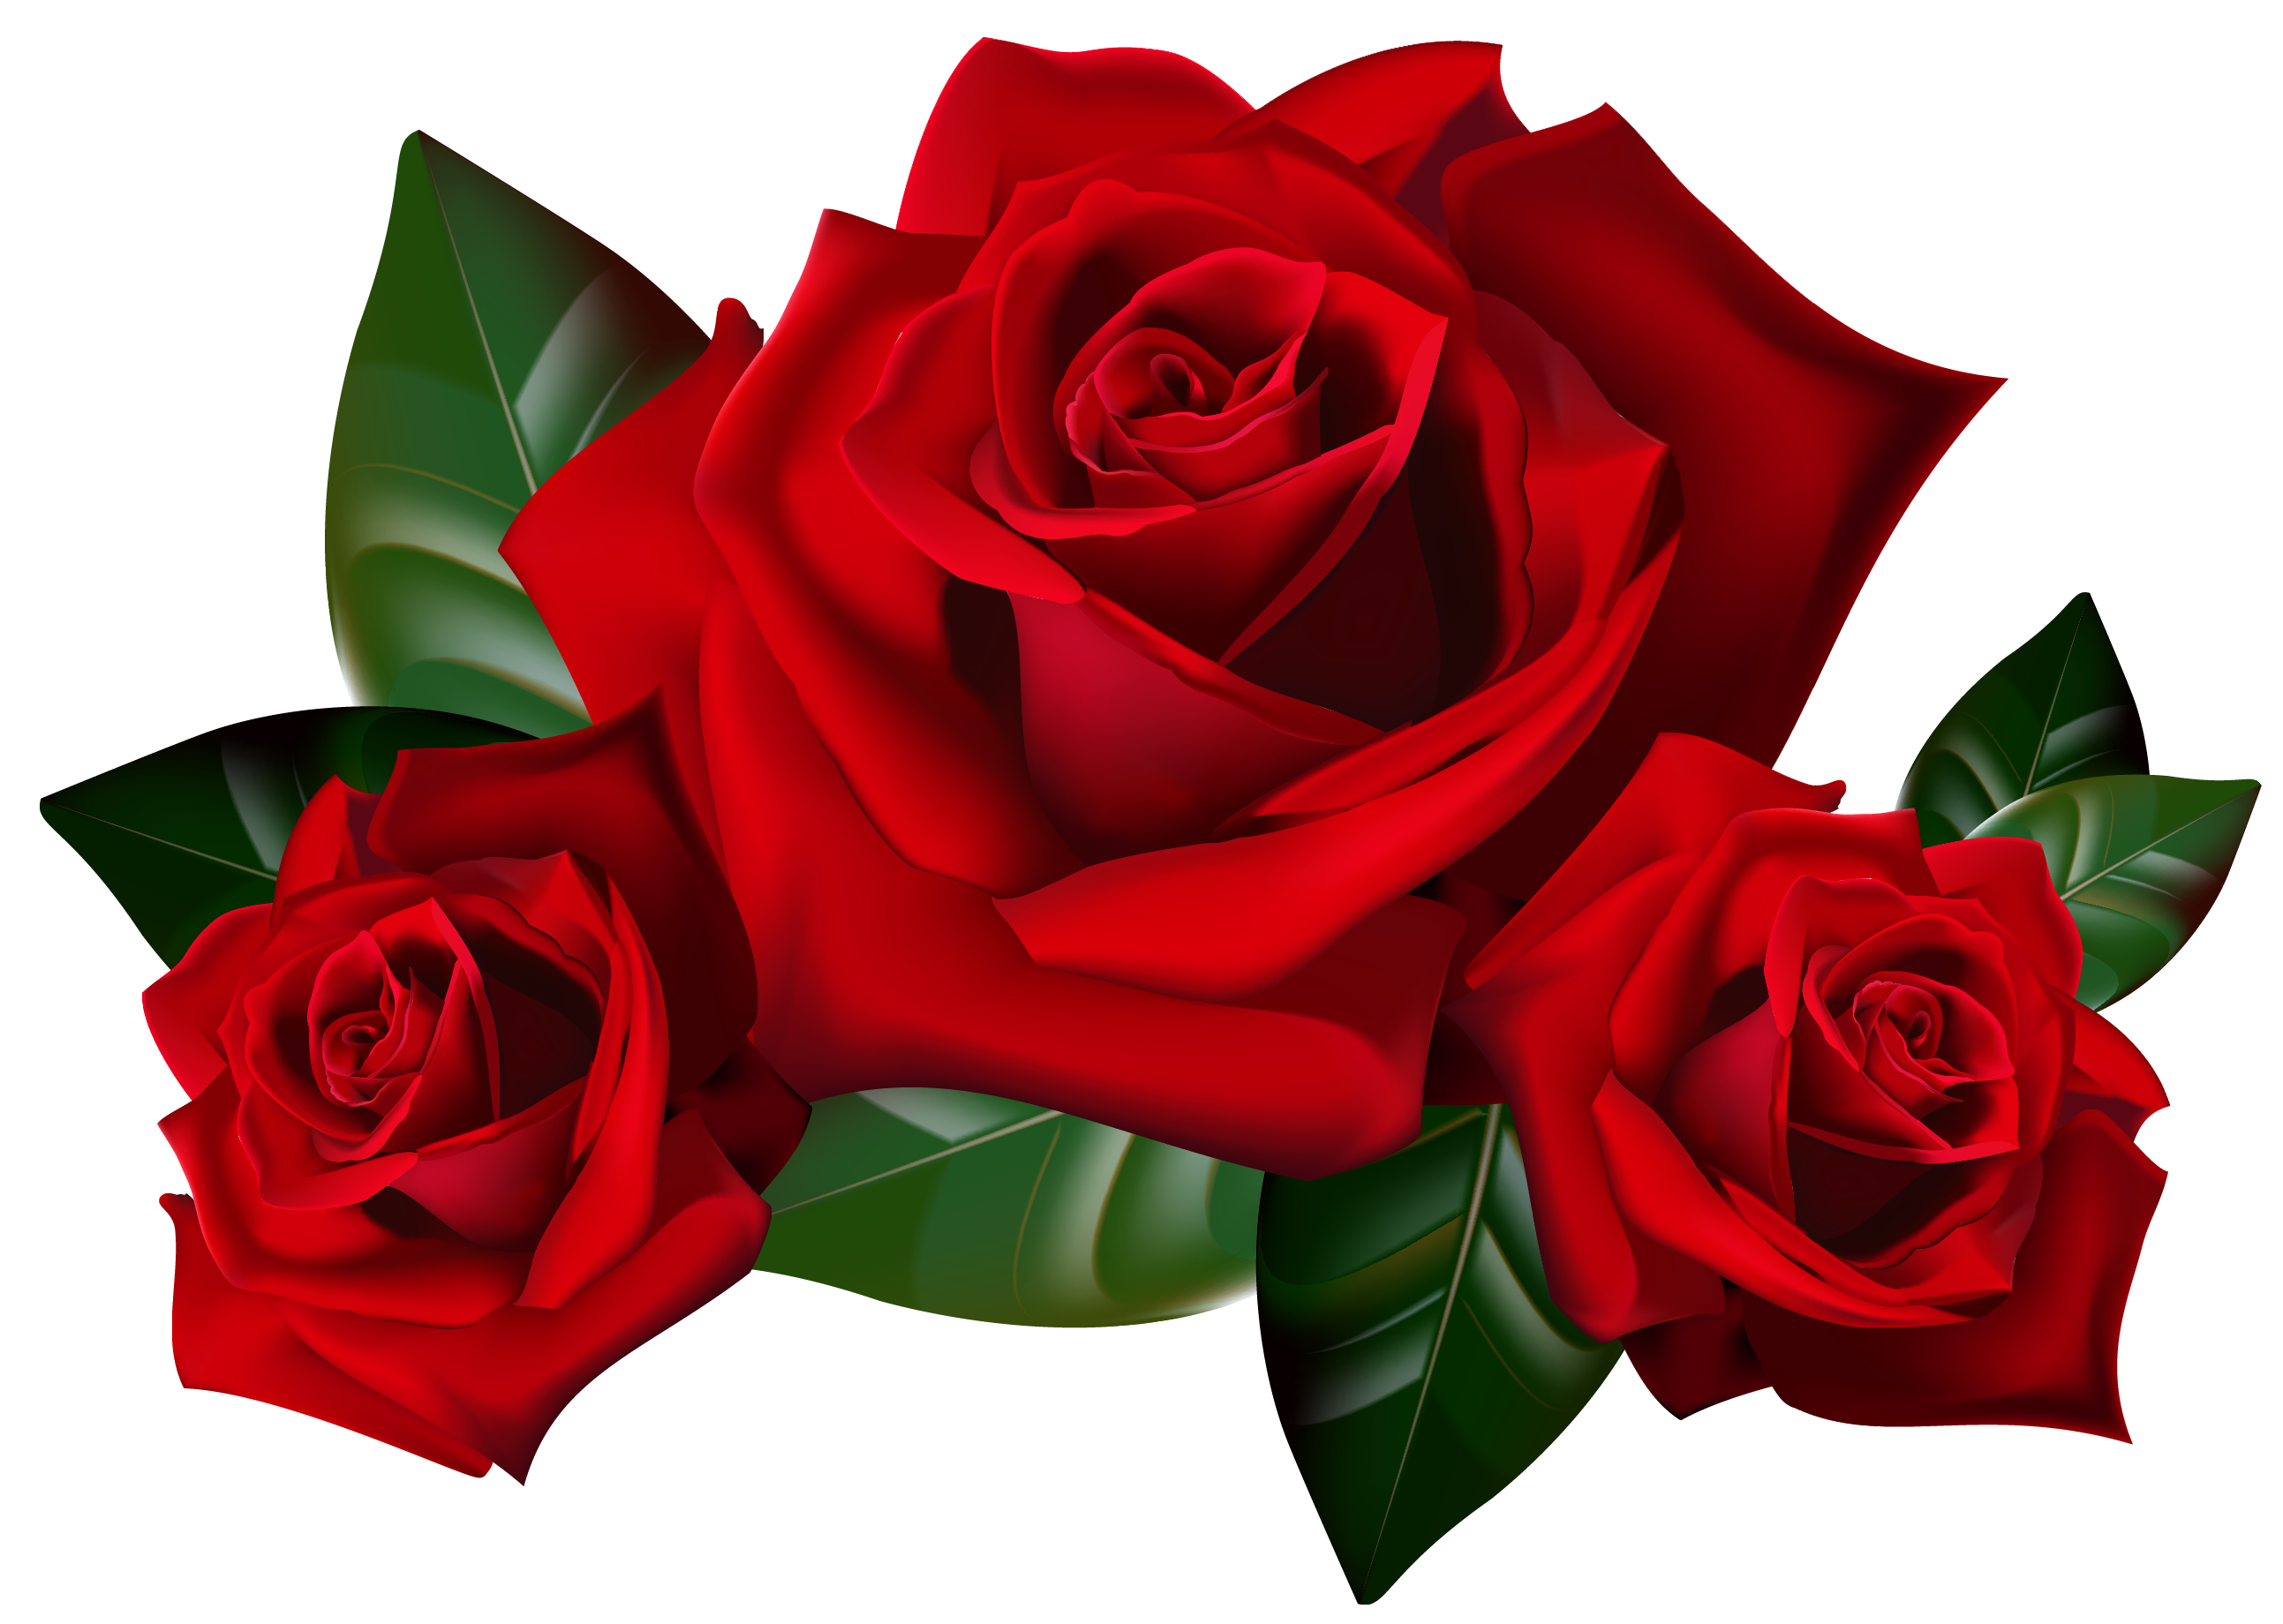 2586x1840 Red Roses Png Clipart Pictureu200b Gallery Yopriceville